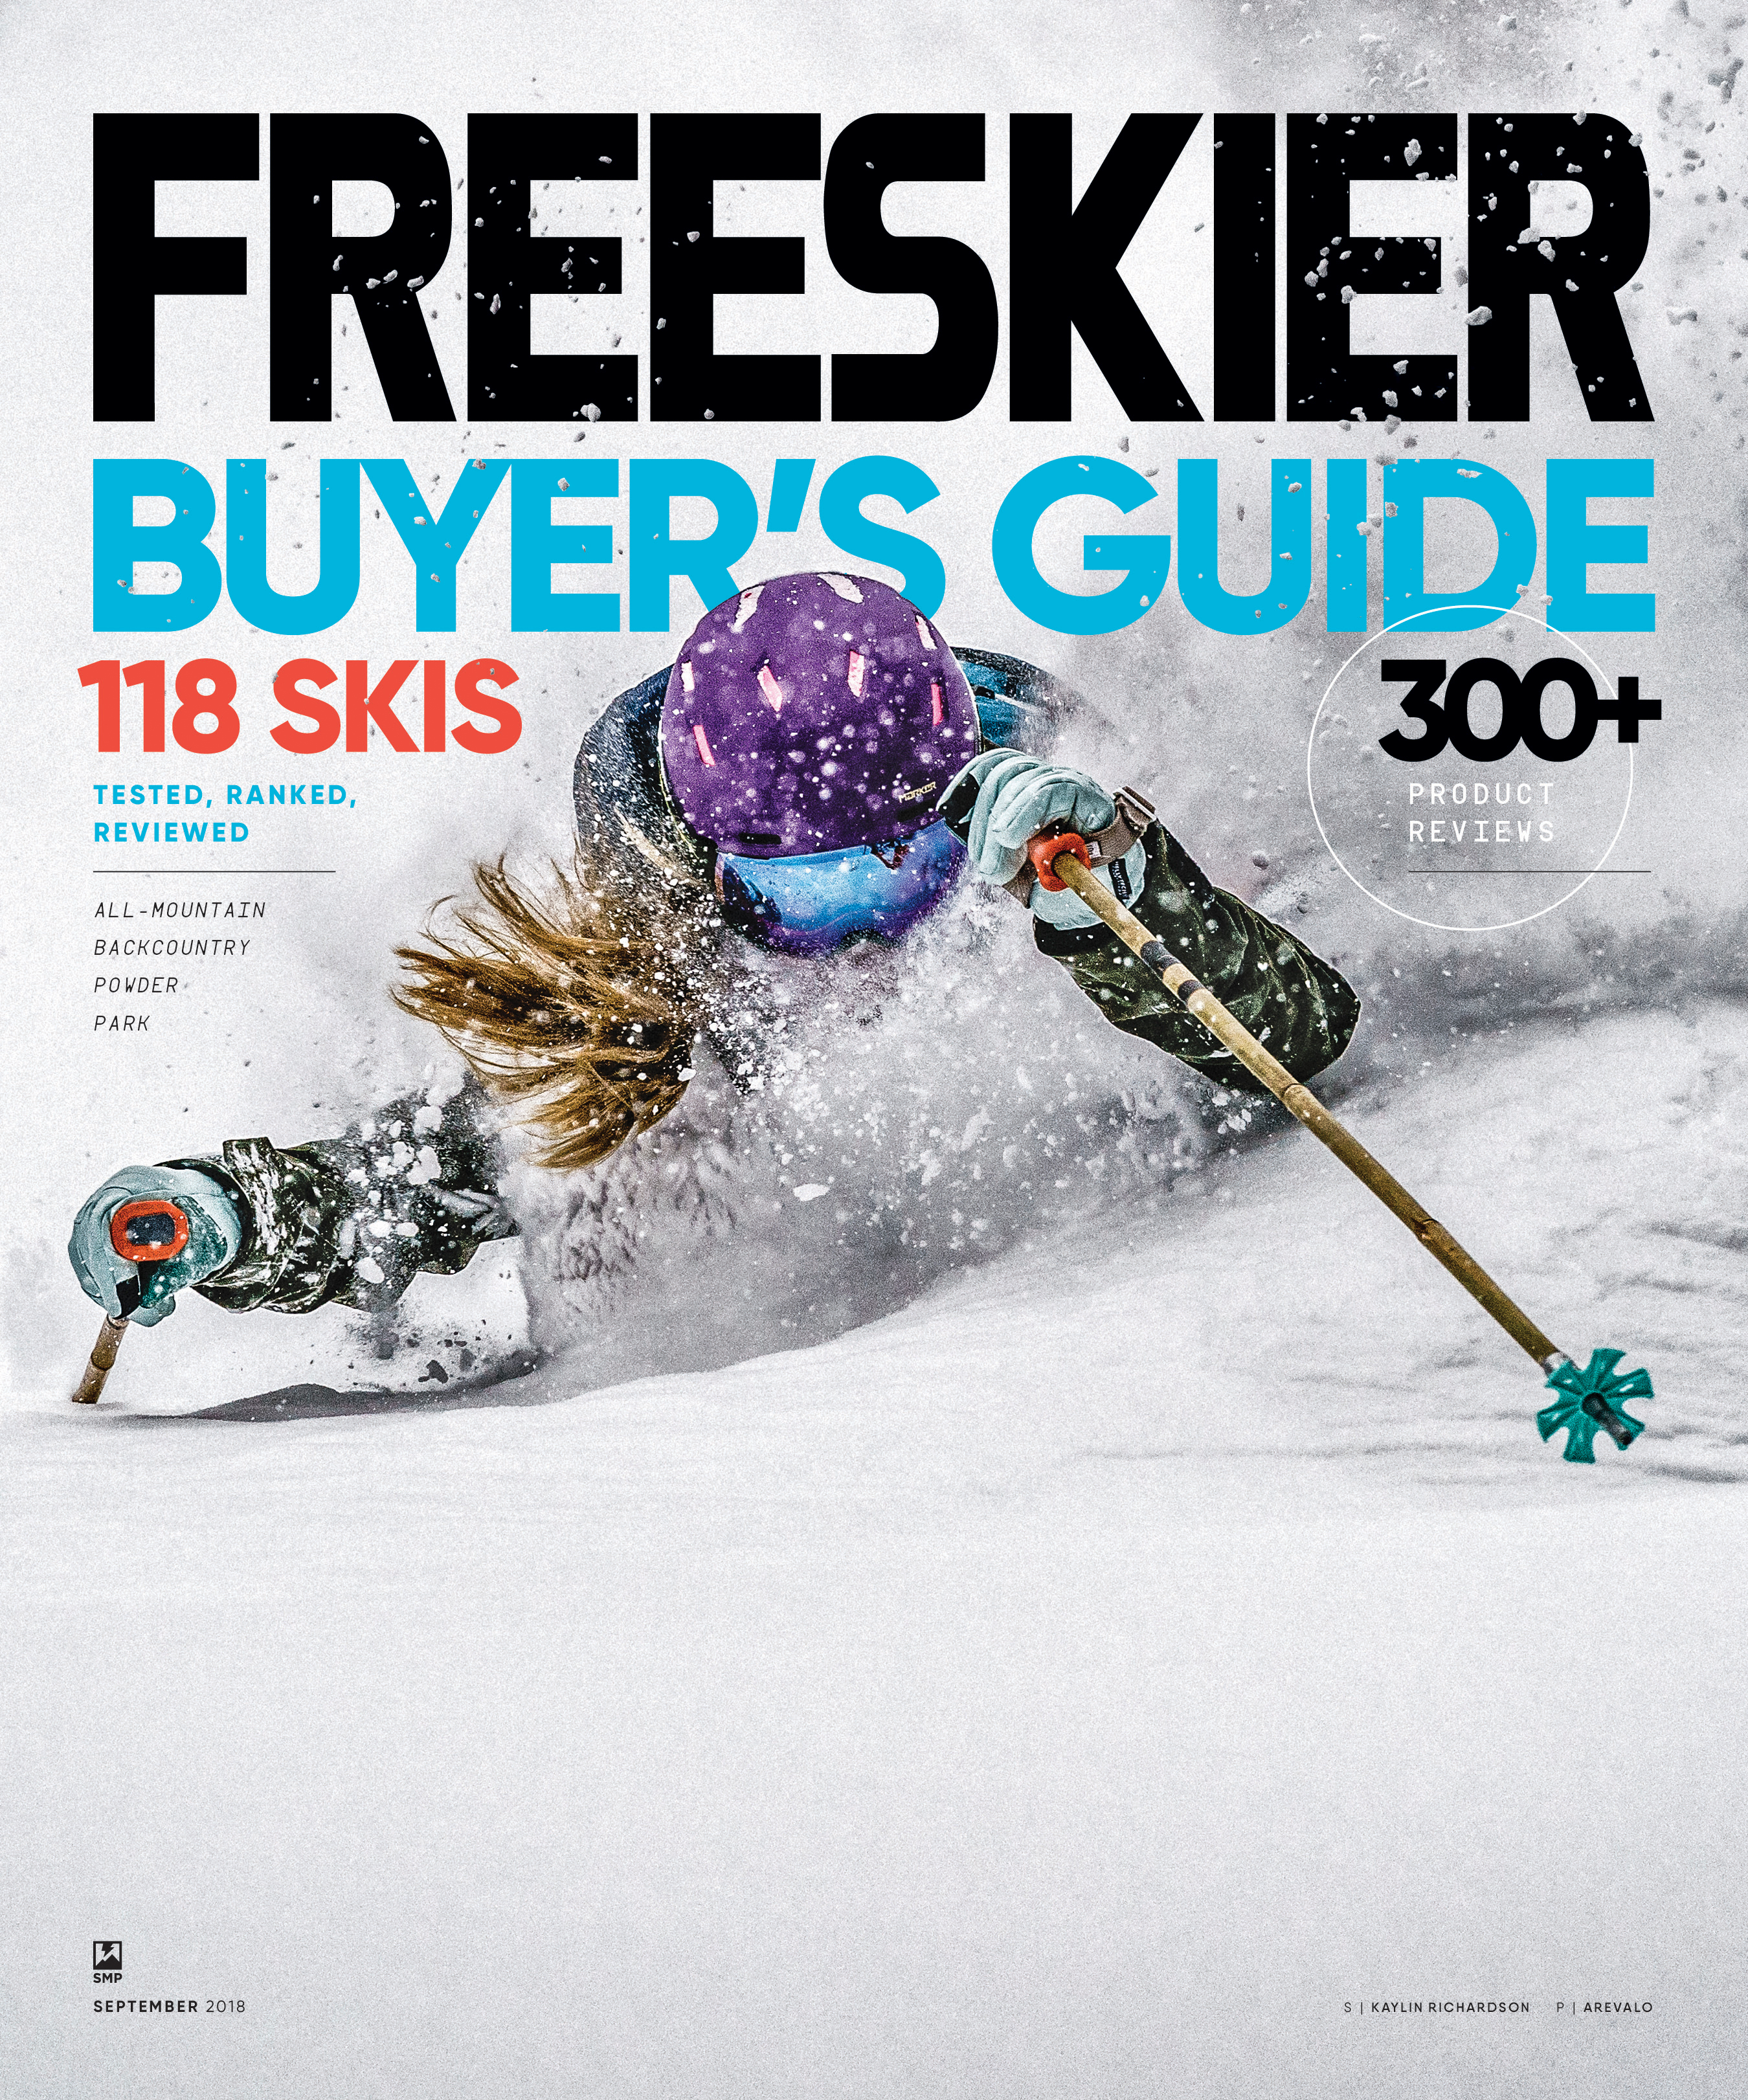 subscribe to freeskier magazine freeskier rh freeskier com Back of Buyers Guide Used Car Buyers Guide